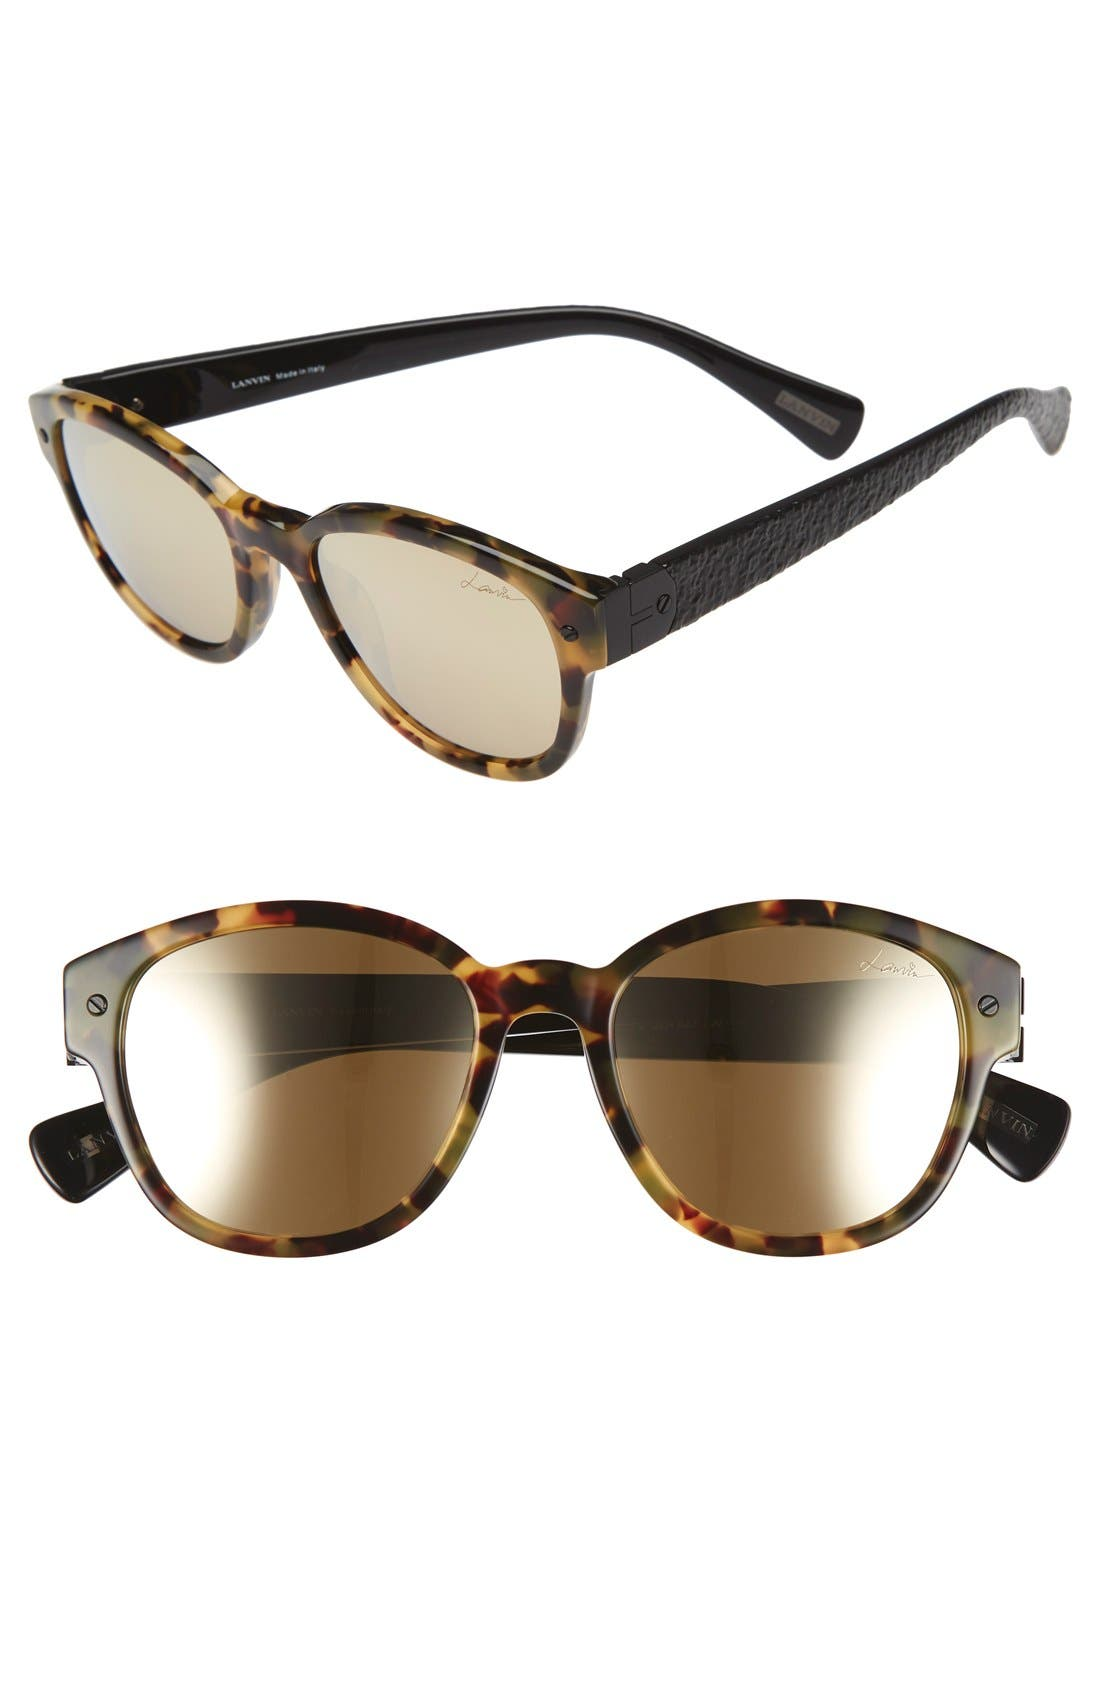 50mm Retro Sunglasses,                         Main,                         color, Light Havana